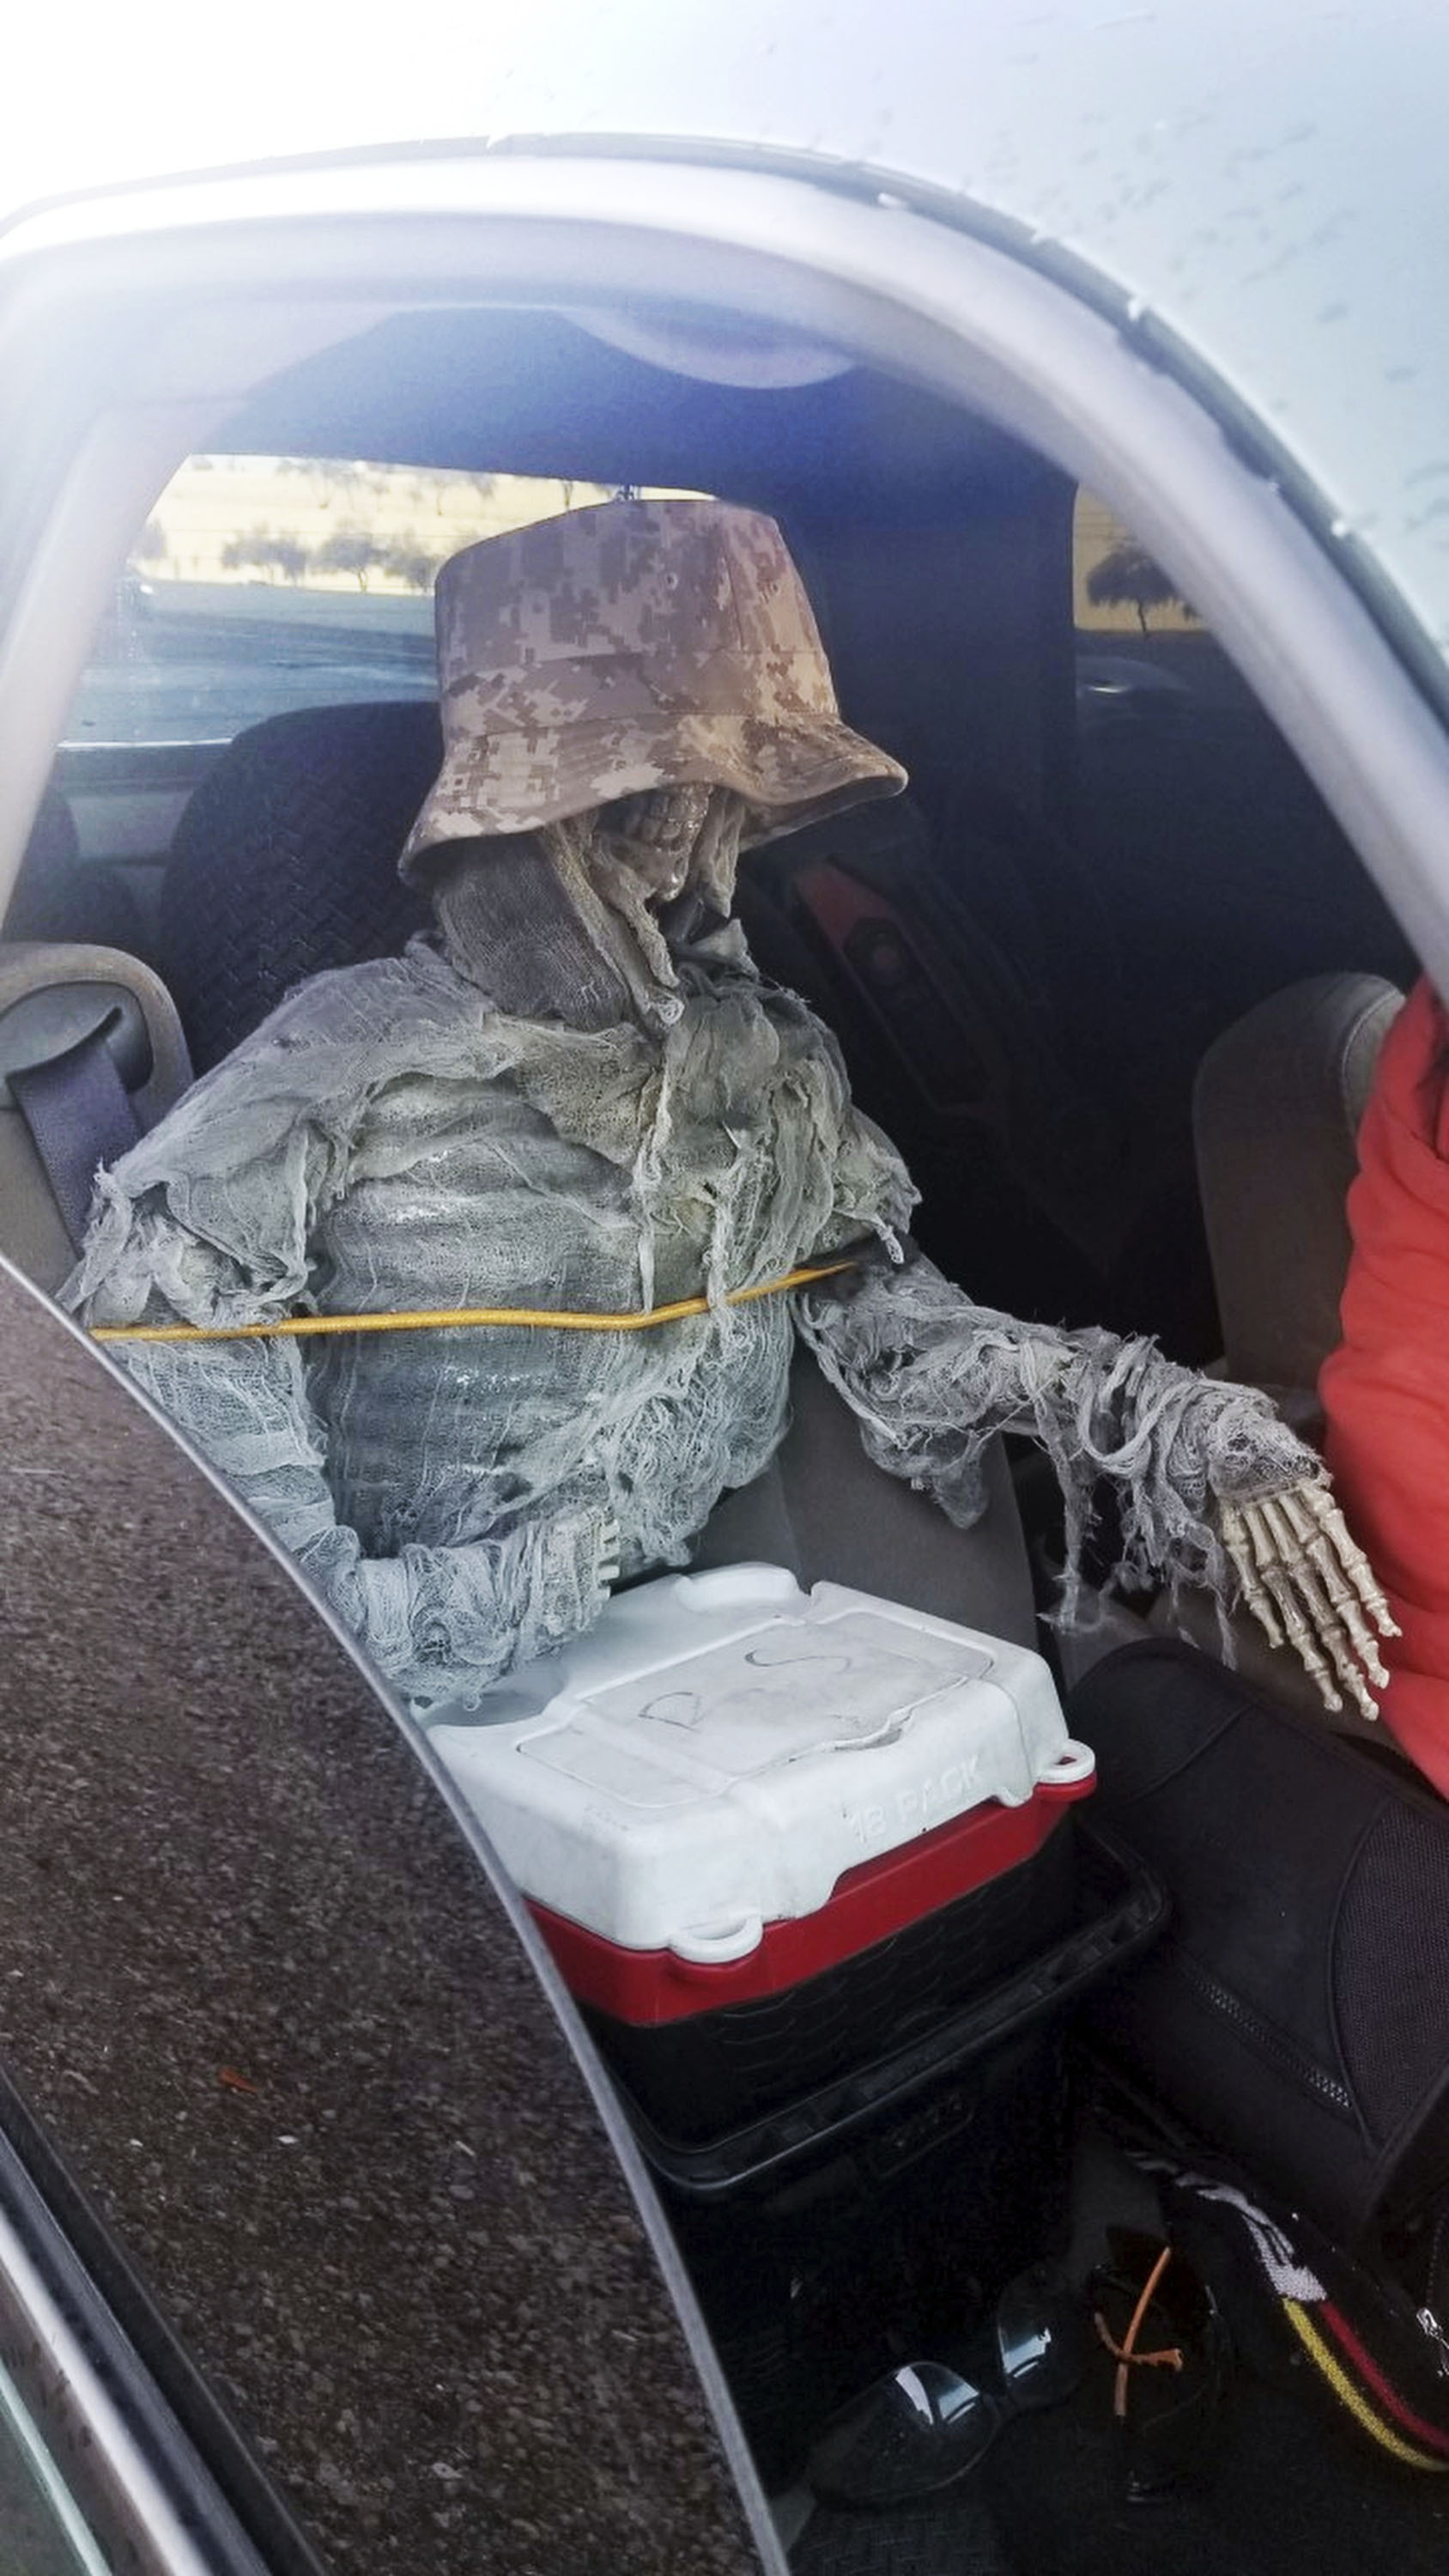 Arizona Man Caught Driving In The HOV Lane With Fake Skeleton Riding Shotgun